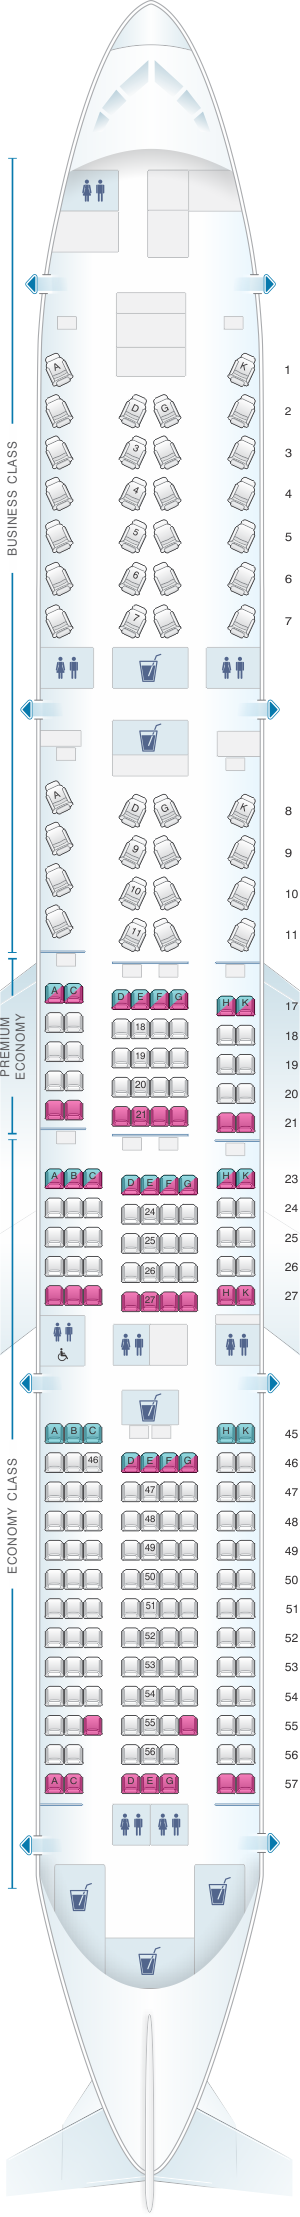 Seat map for Japan Airlines (JAL) Boeing B777 200ER W61/W62